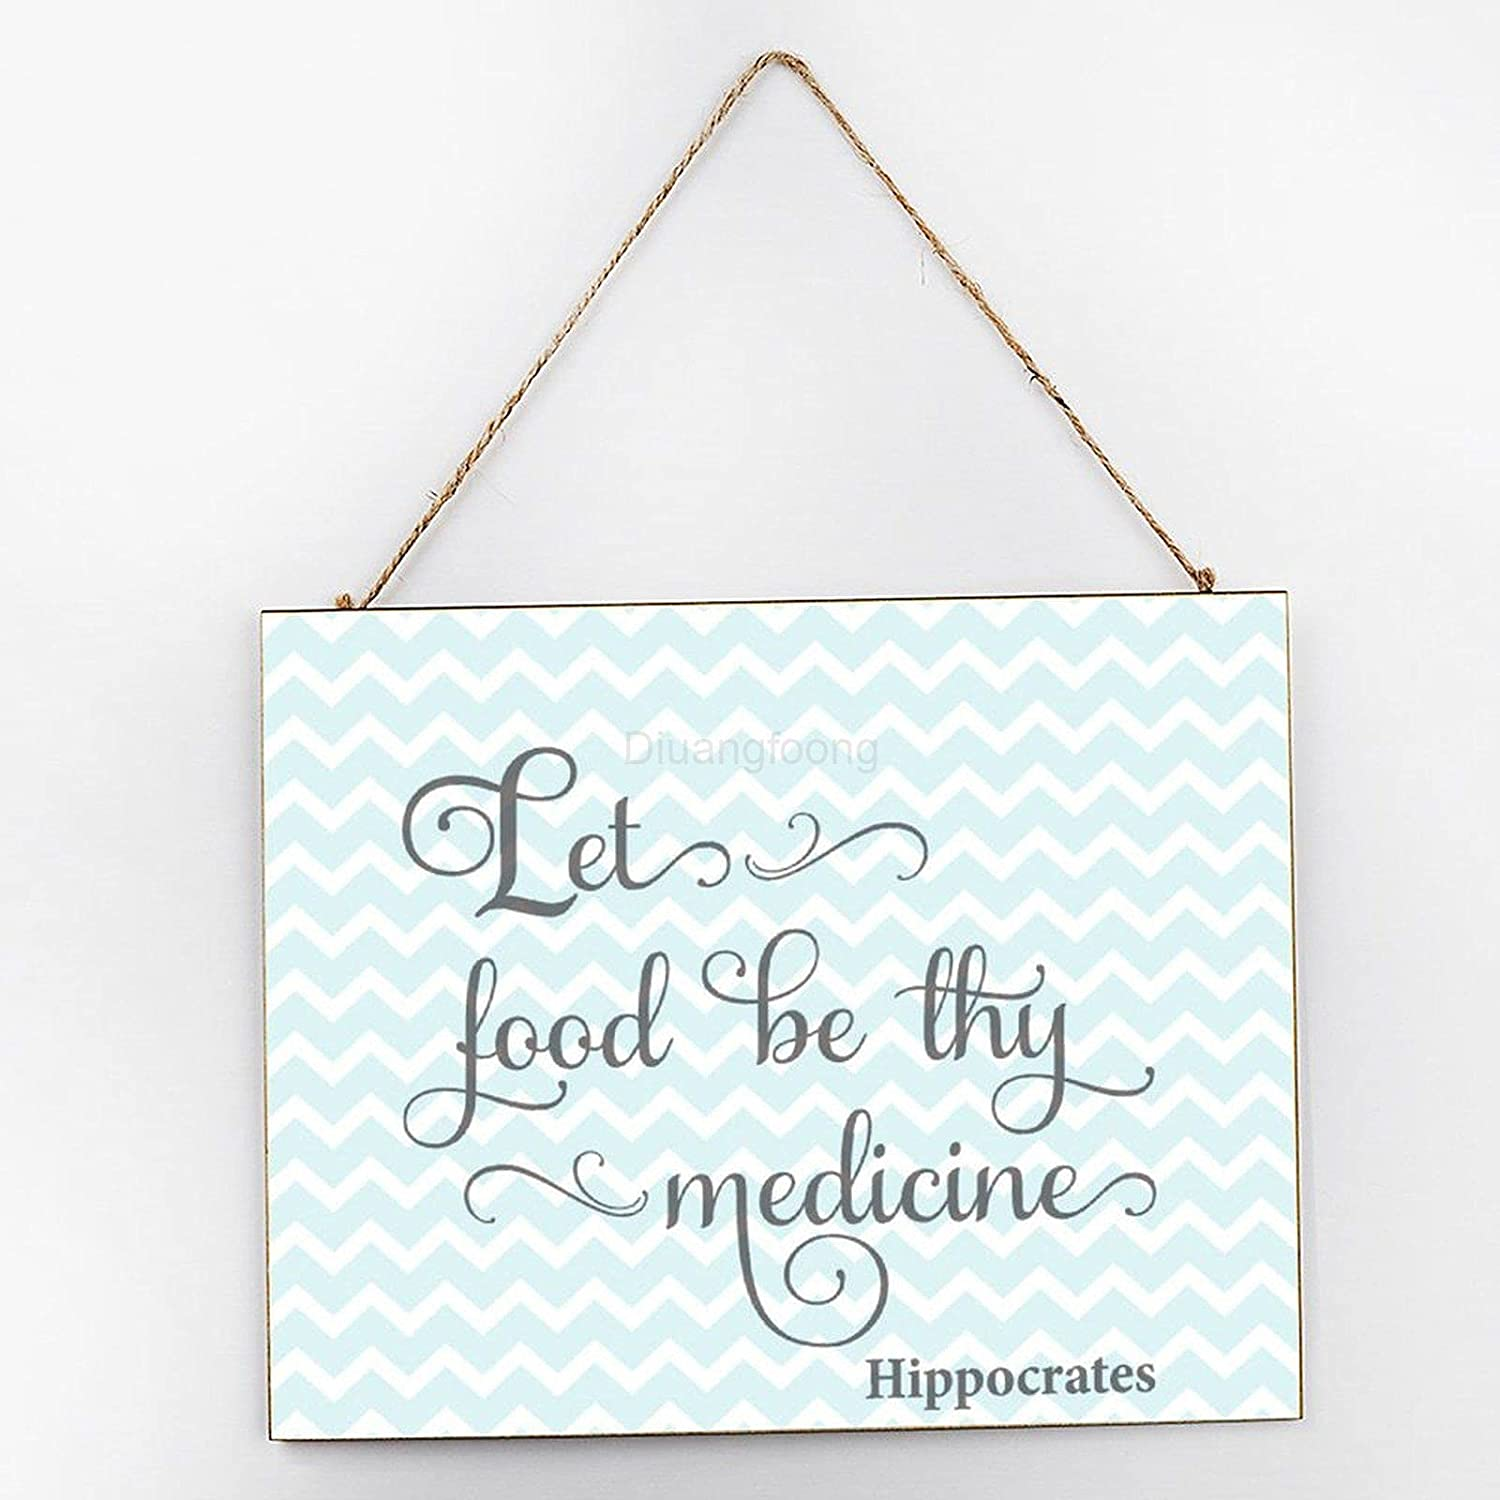 Diuangfoong Let Food Be Thy Medicine Inspirational Wall Art, Inspirational Signage, Wooden Signs for Home Decor Kitchen Bathroom, Wooden Frame Wall Hanging Sign 10x12x0.2 Inch